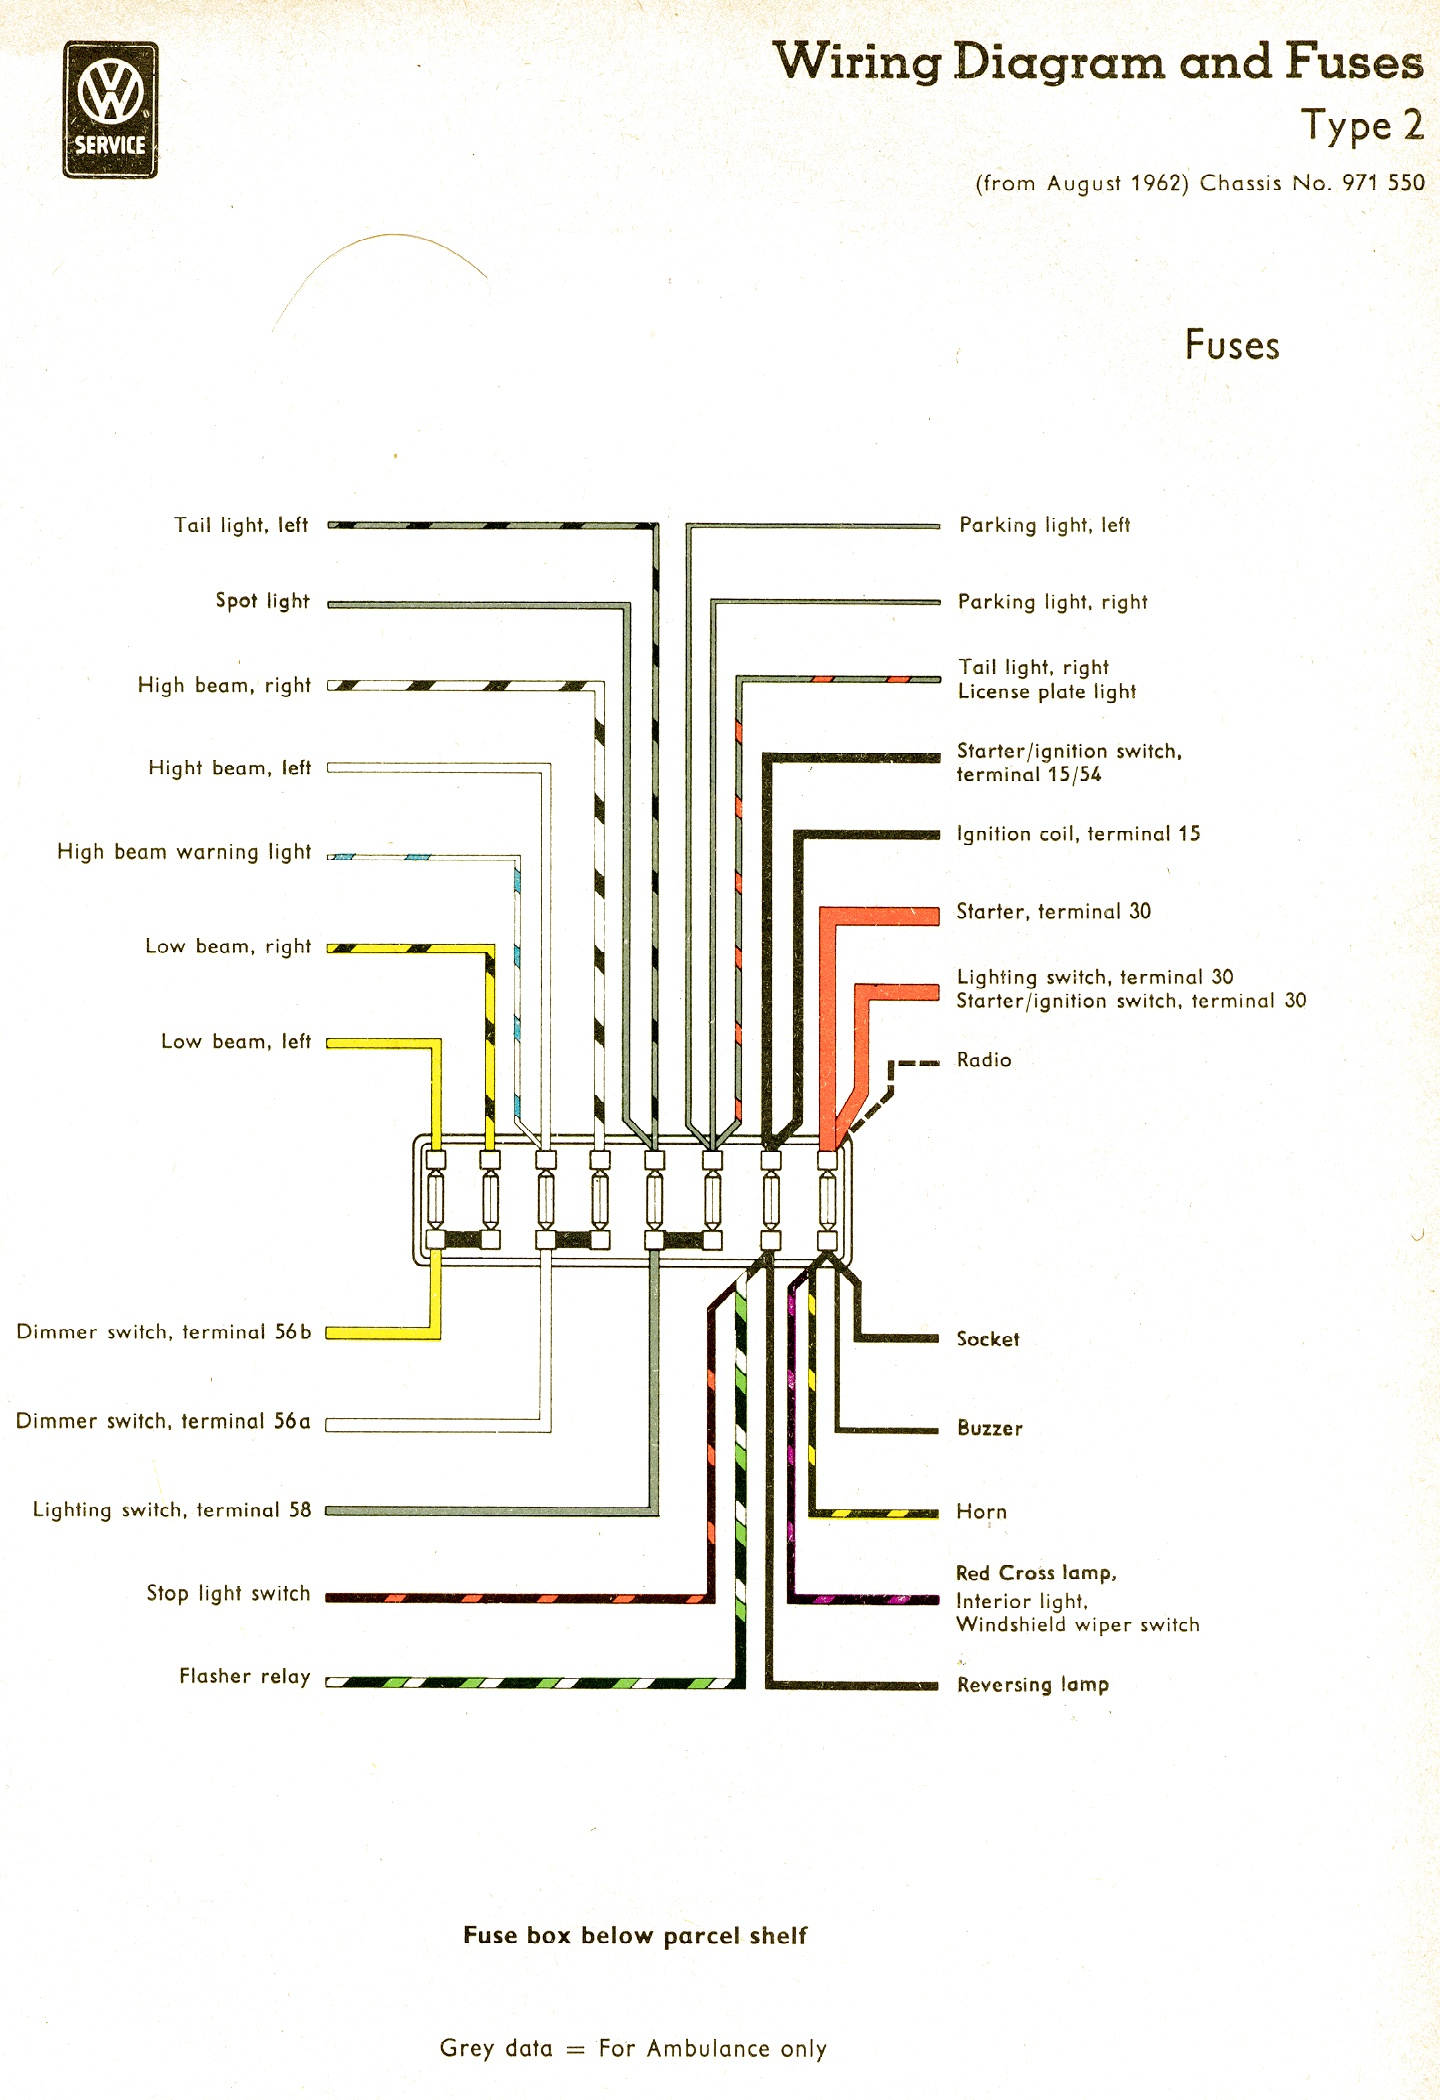 bus 62 fuse vw wiring diagrams 1971 karmann ghia wiring diagram at couponss.co